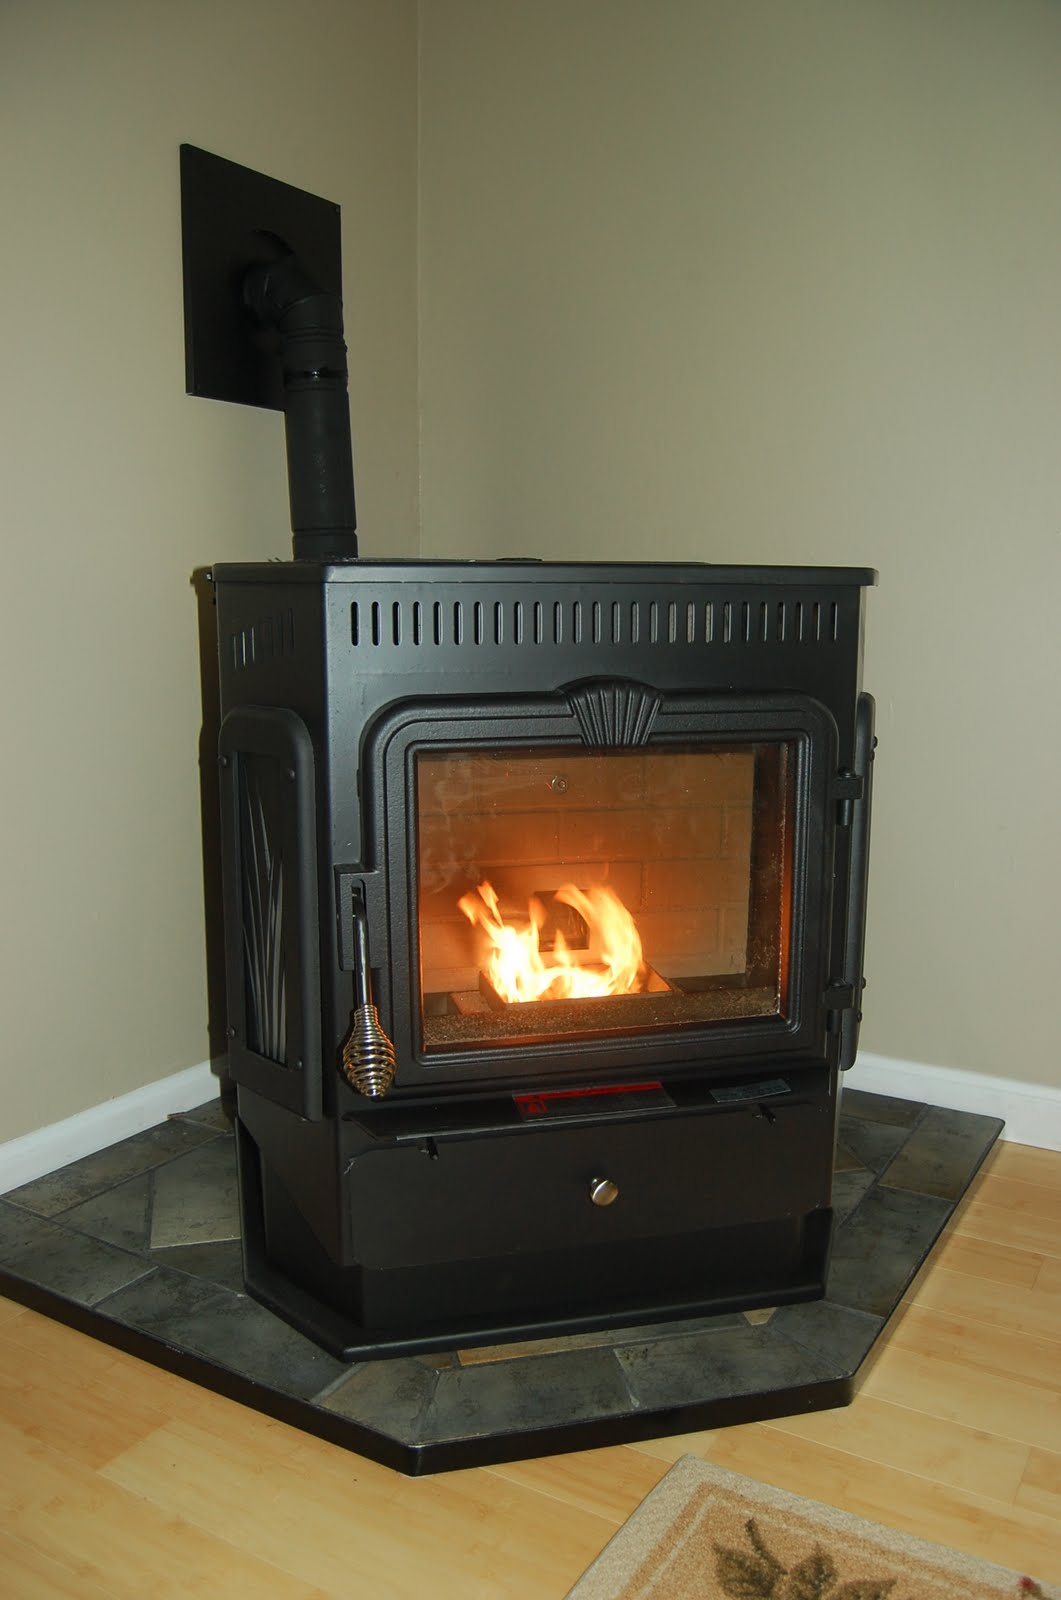 mobile home wood stove chimney with Pellet Stove Install on 50015916 further 10 Fireplaces For Any Style Which One Is Yours as well Gas Stoves further 3583374 besides How To Choose Lighting For Your Colonial Style Kitchen.